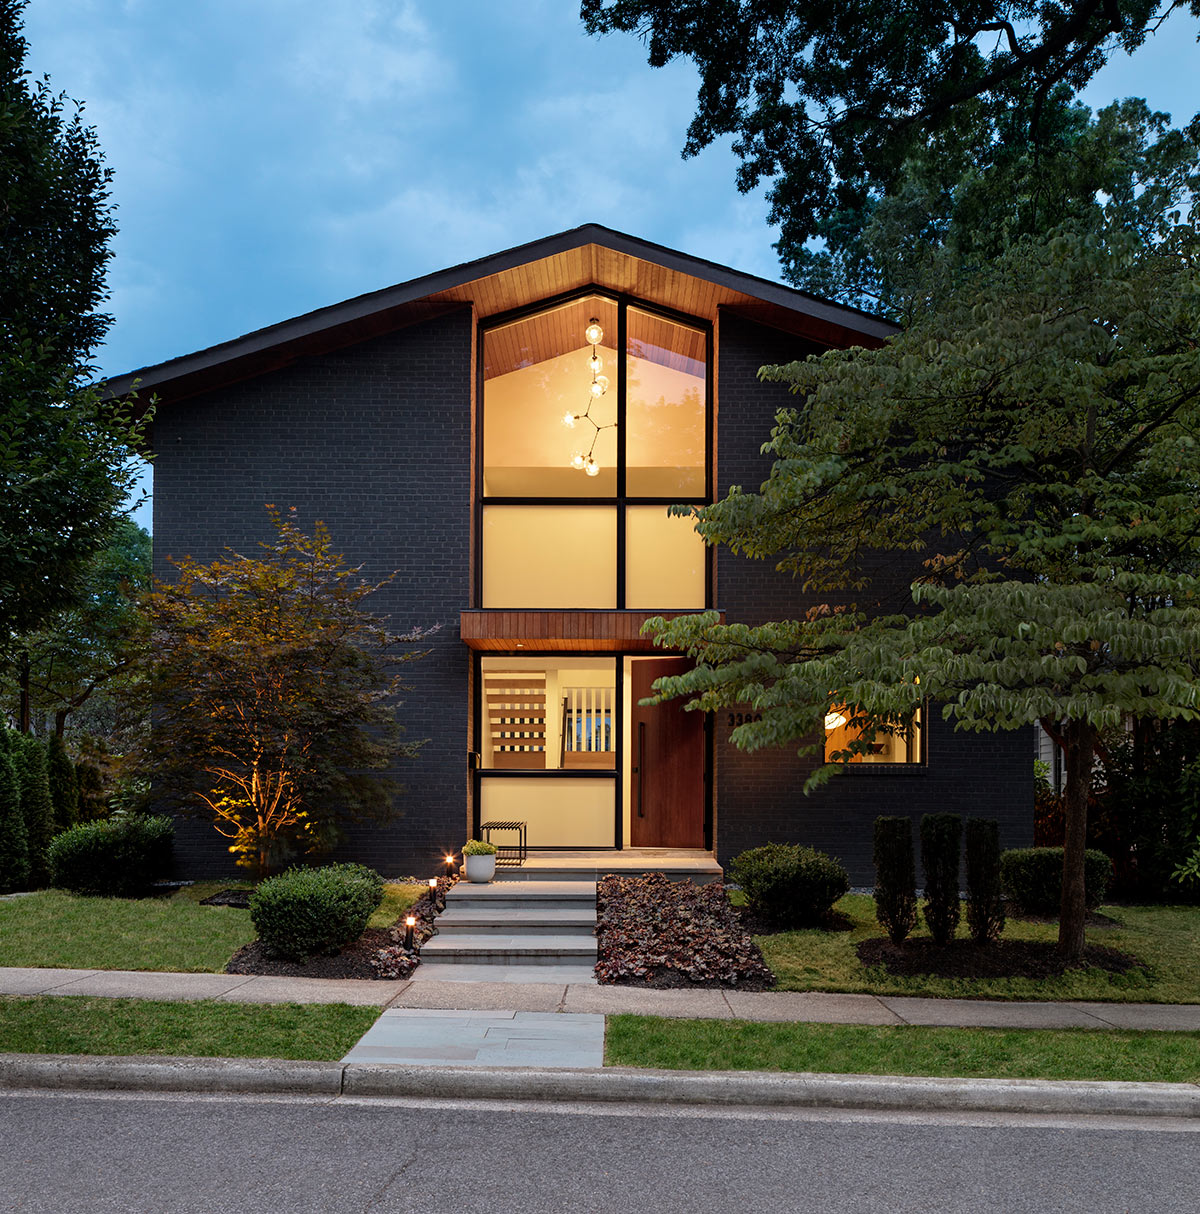 This house was originally built in 1962 and was a modernist dream, and now it's renovated in contemporary style